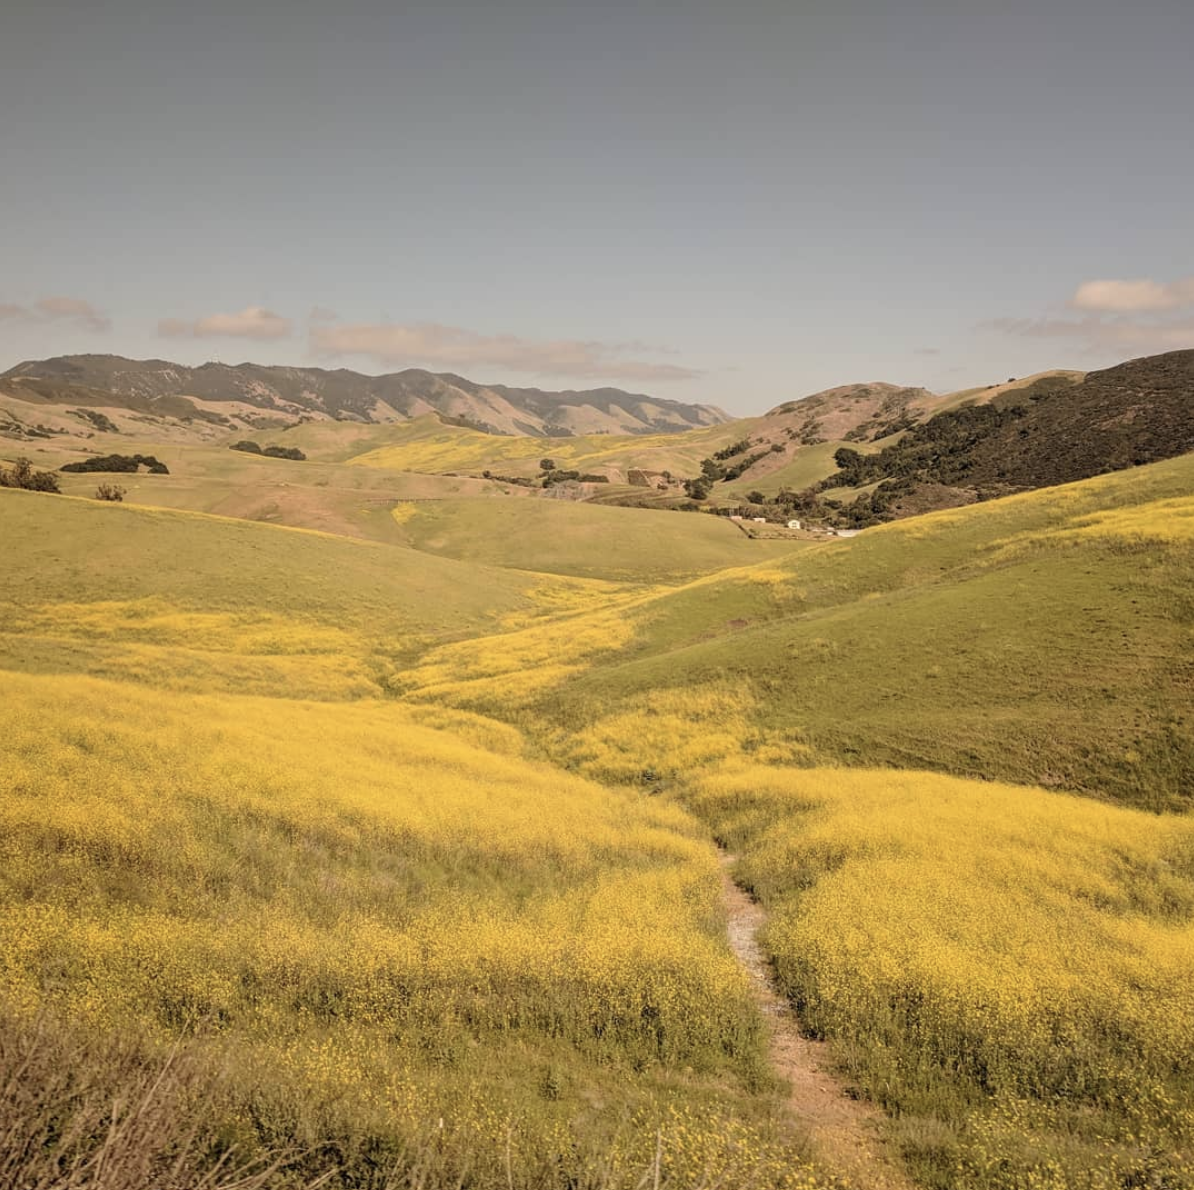 Mustard in full bloom lines a winding footpath in the hills above San Luis Obispo, California.